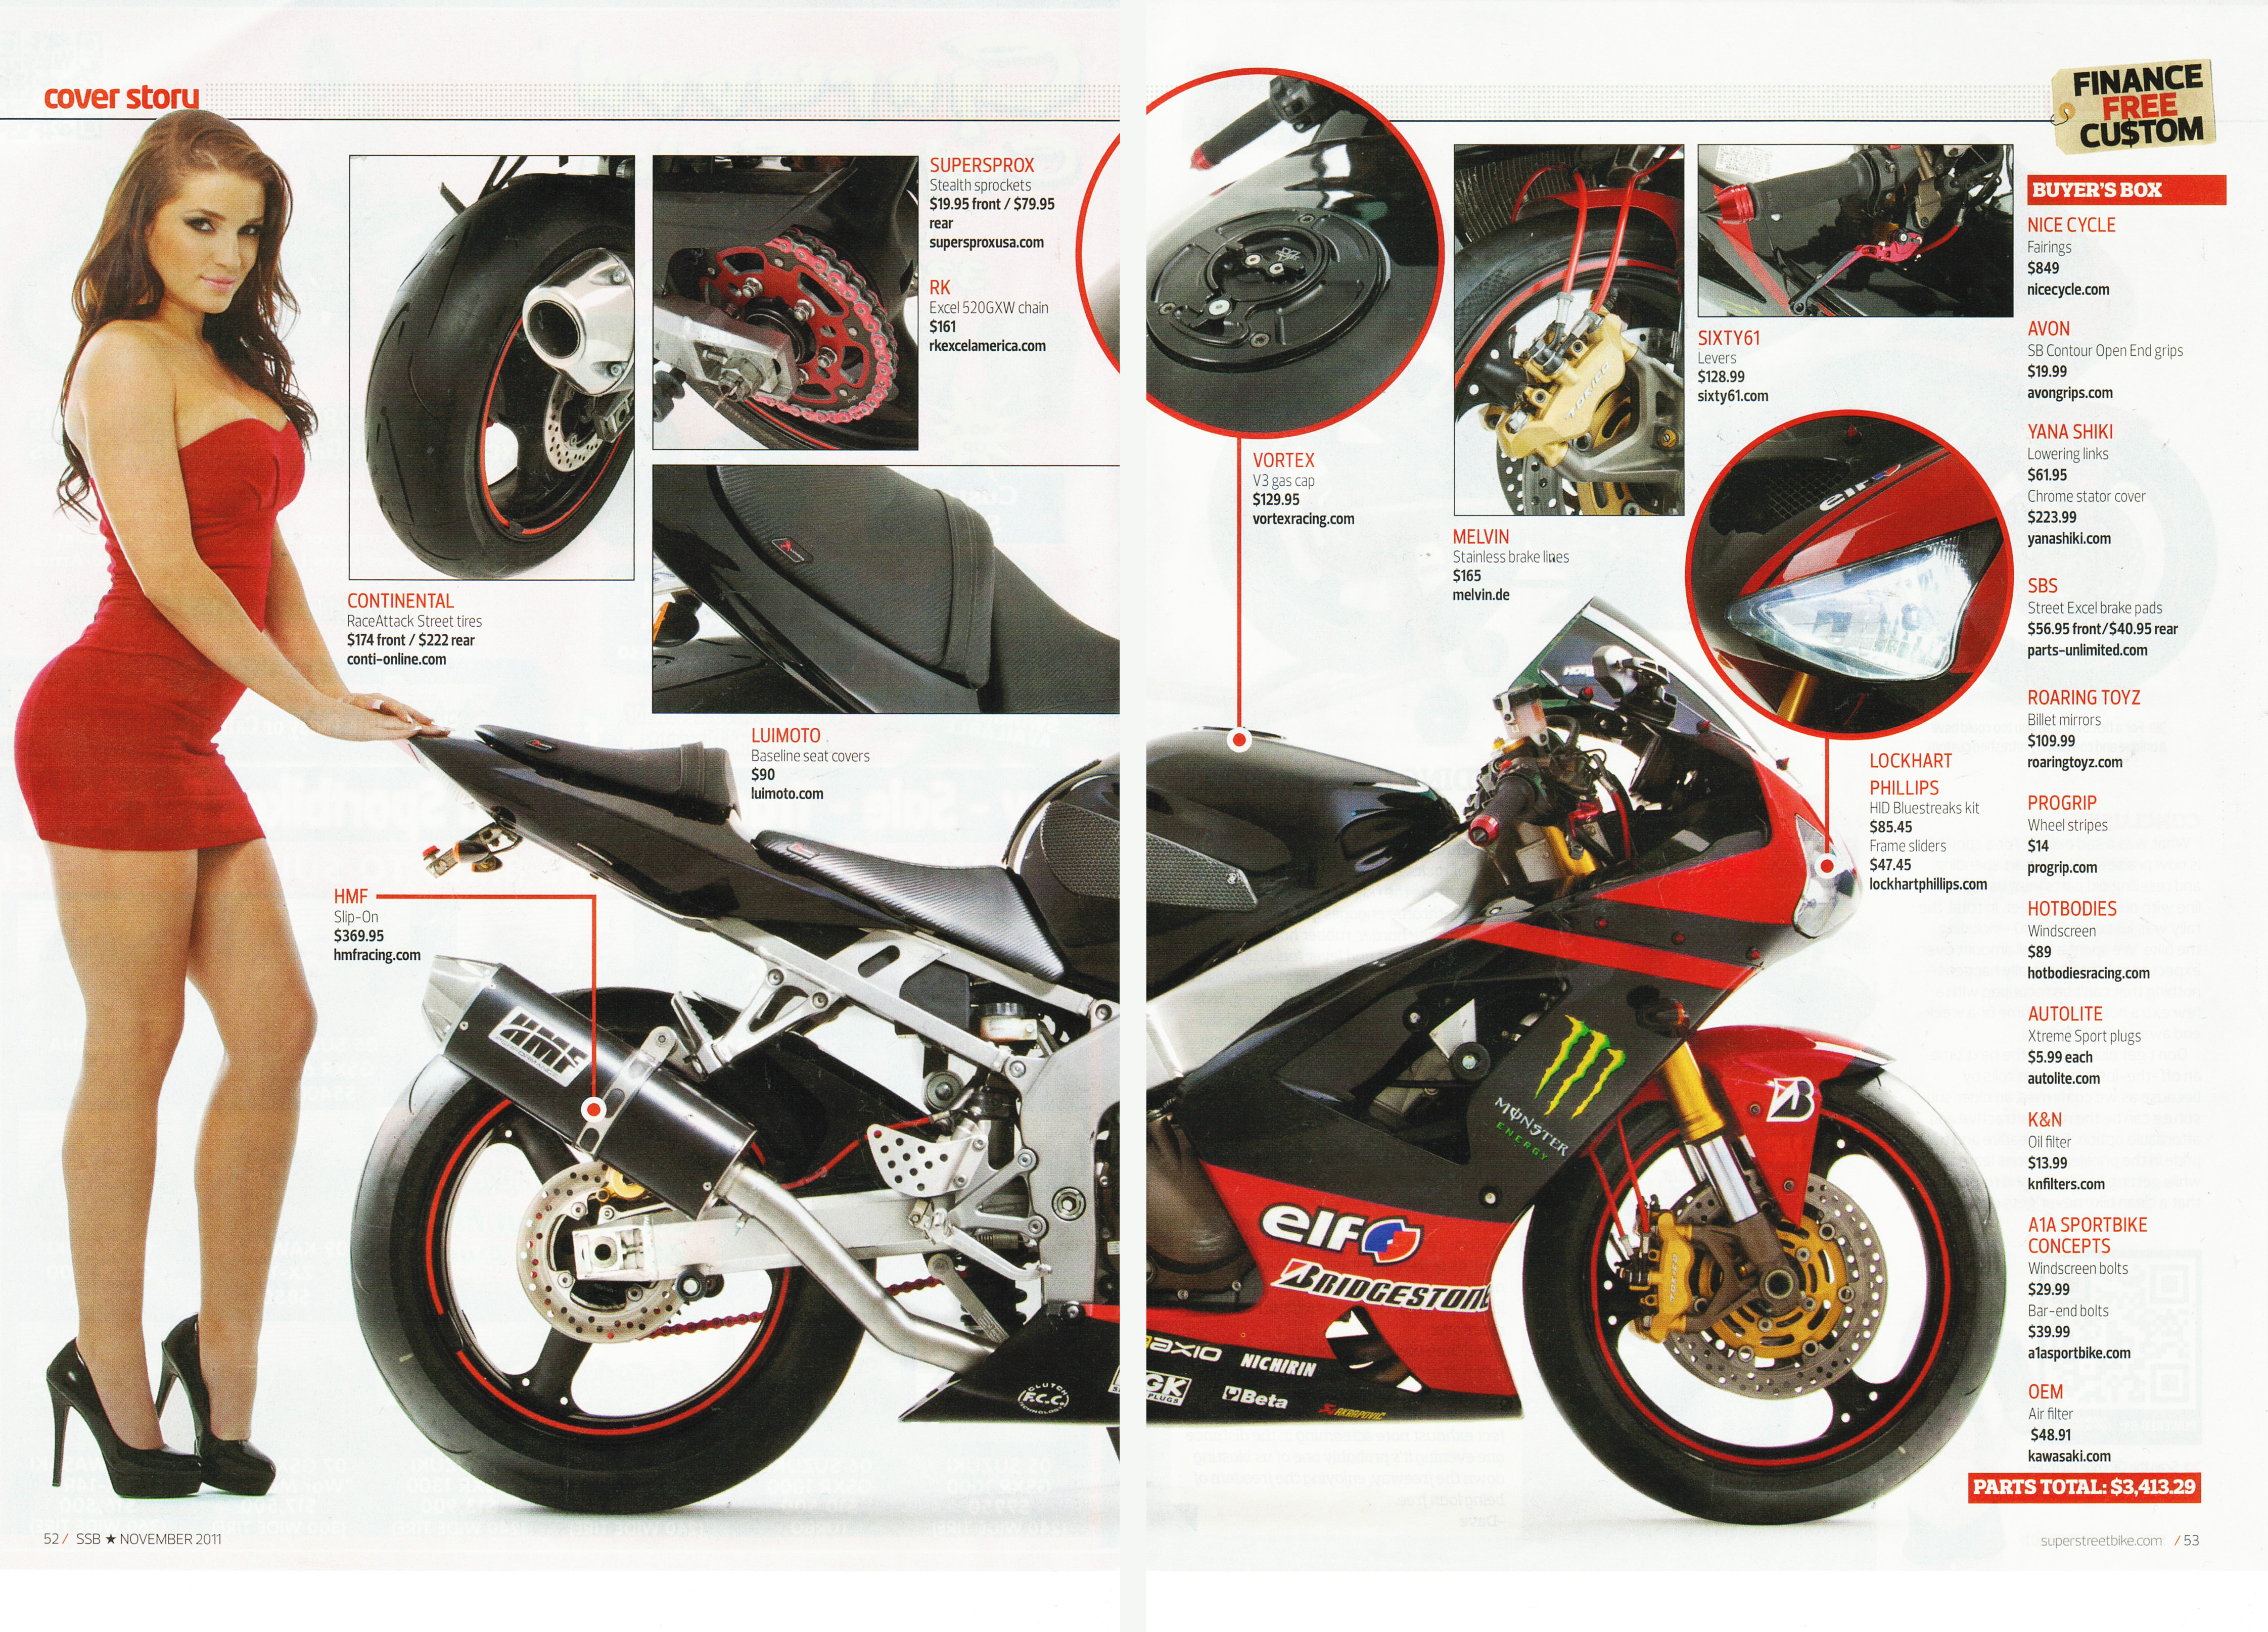 Luimoto Featured In Quot Revive Your Ride Quot By Ssb Magazine